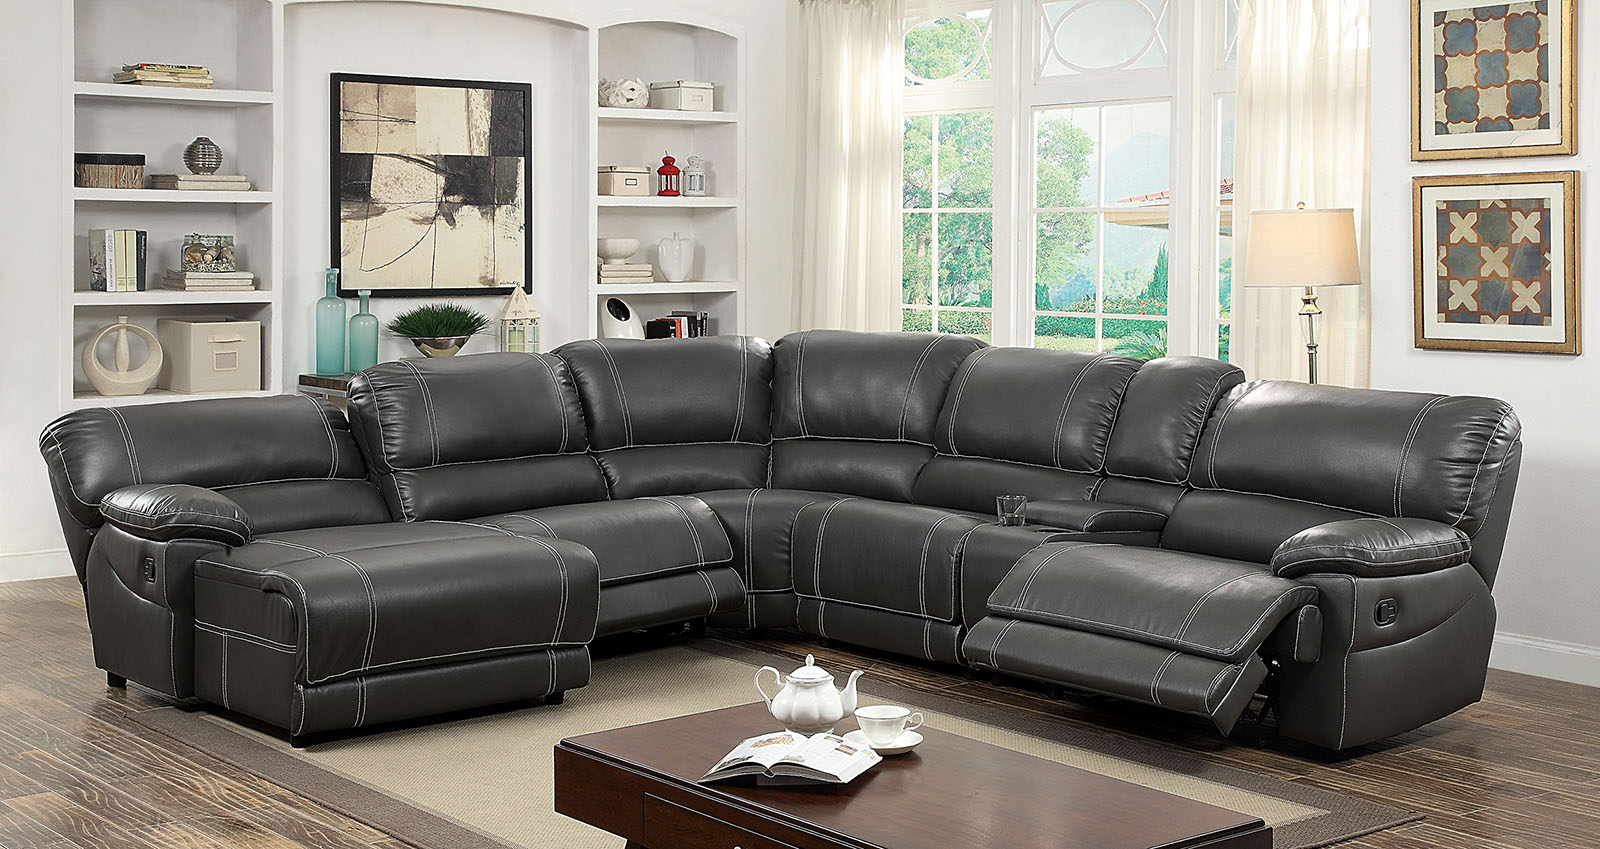 furniture of america 6131gy gray reclining chaise console sectional sofa furniture of america. Black Bedroom Furniture Sets. Home Design Ideas